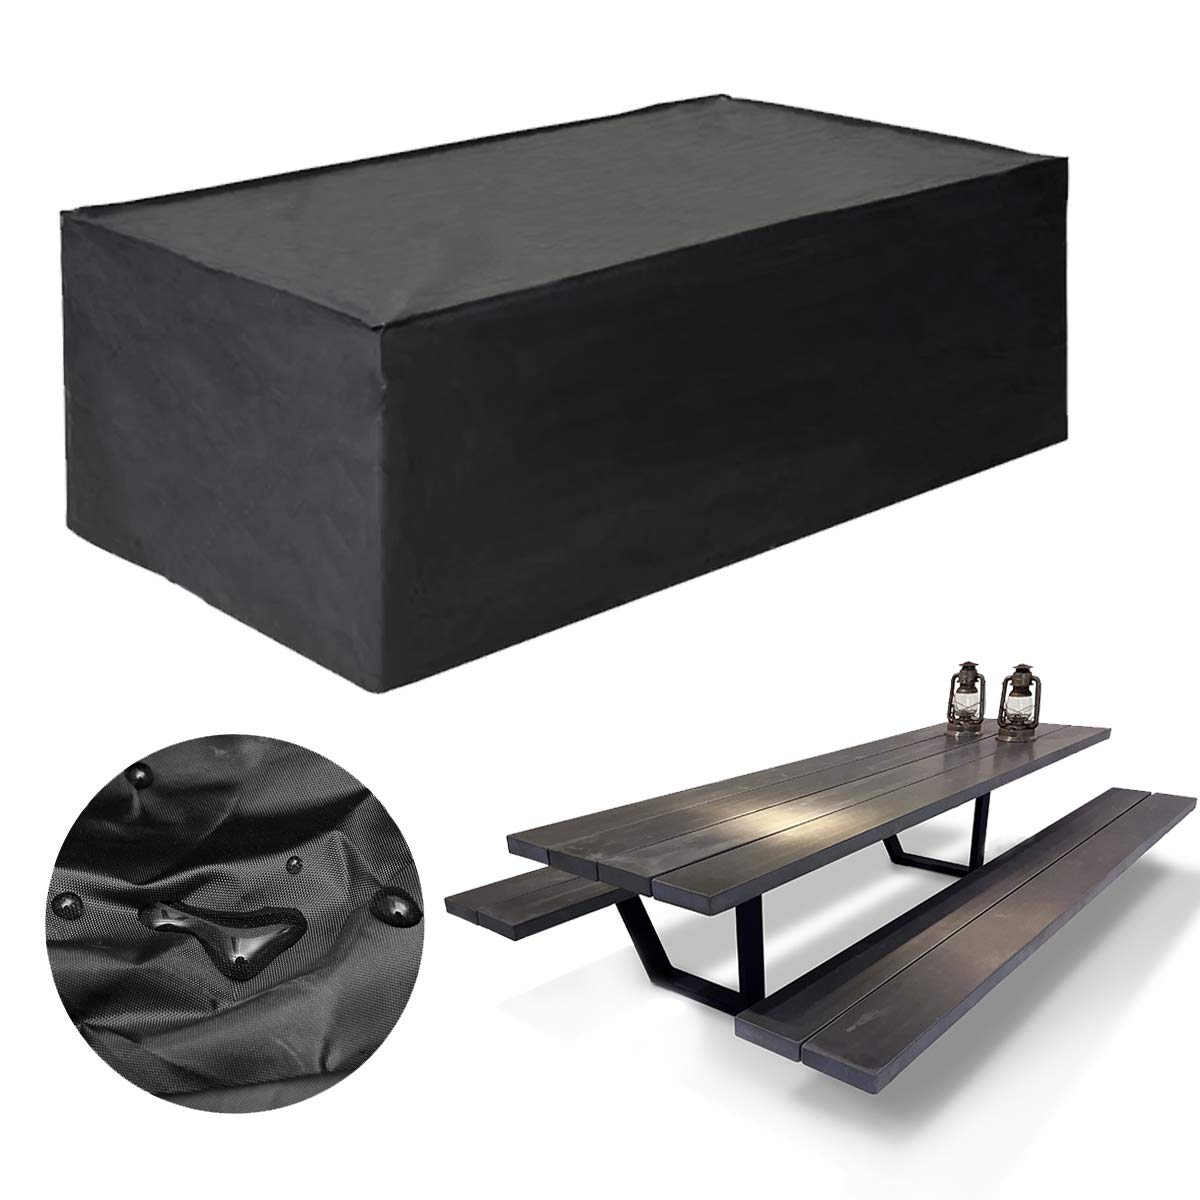 KING DO WAY Cubierta para Muebles de Jardín, Cubiertas Rectangular Impermeable con Corte Cuerda Lona para la Tabla/Silla de Playa (308 x 138 x 89 cm): Amazon.es: Jardín